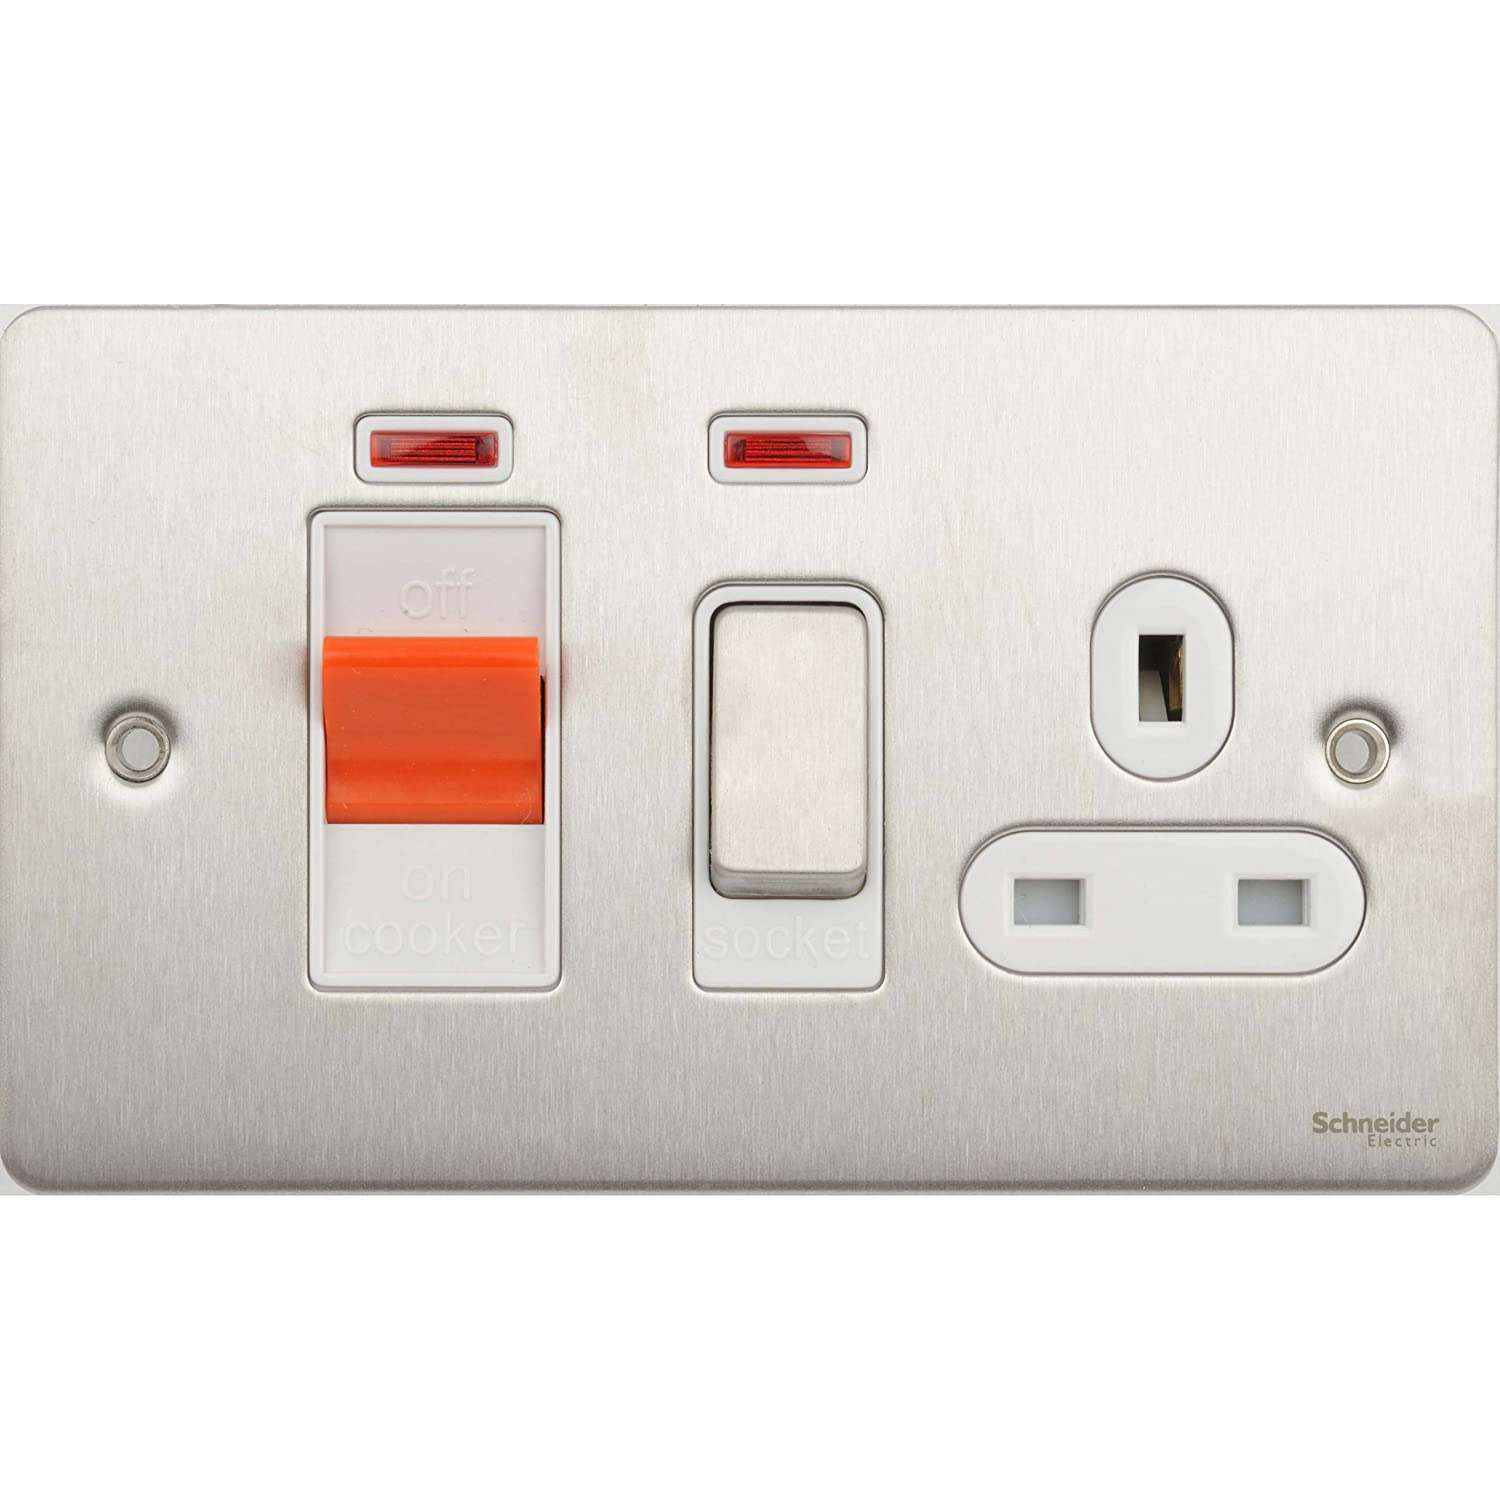 13A SOCKET//NEON GET ULTIMATE COLLECTION FLAT PLATE 45A DP COOKER CONTROL UNIT